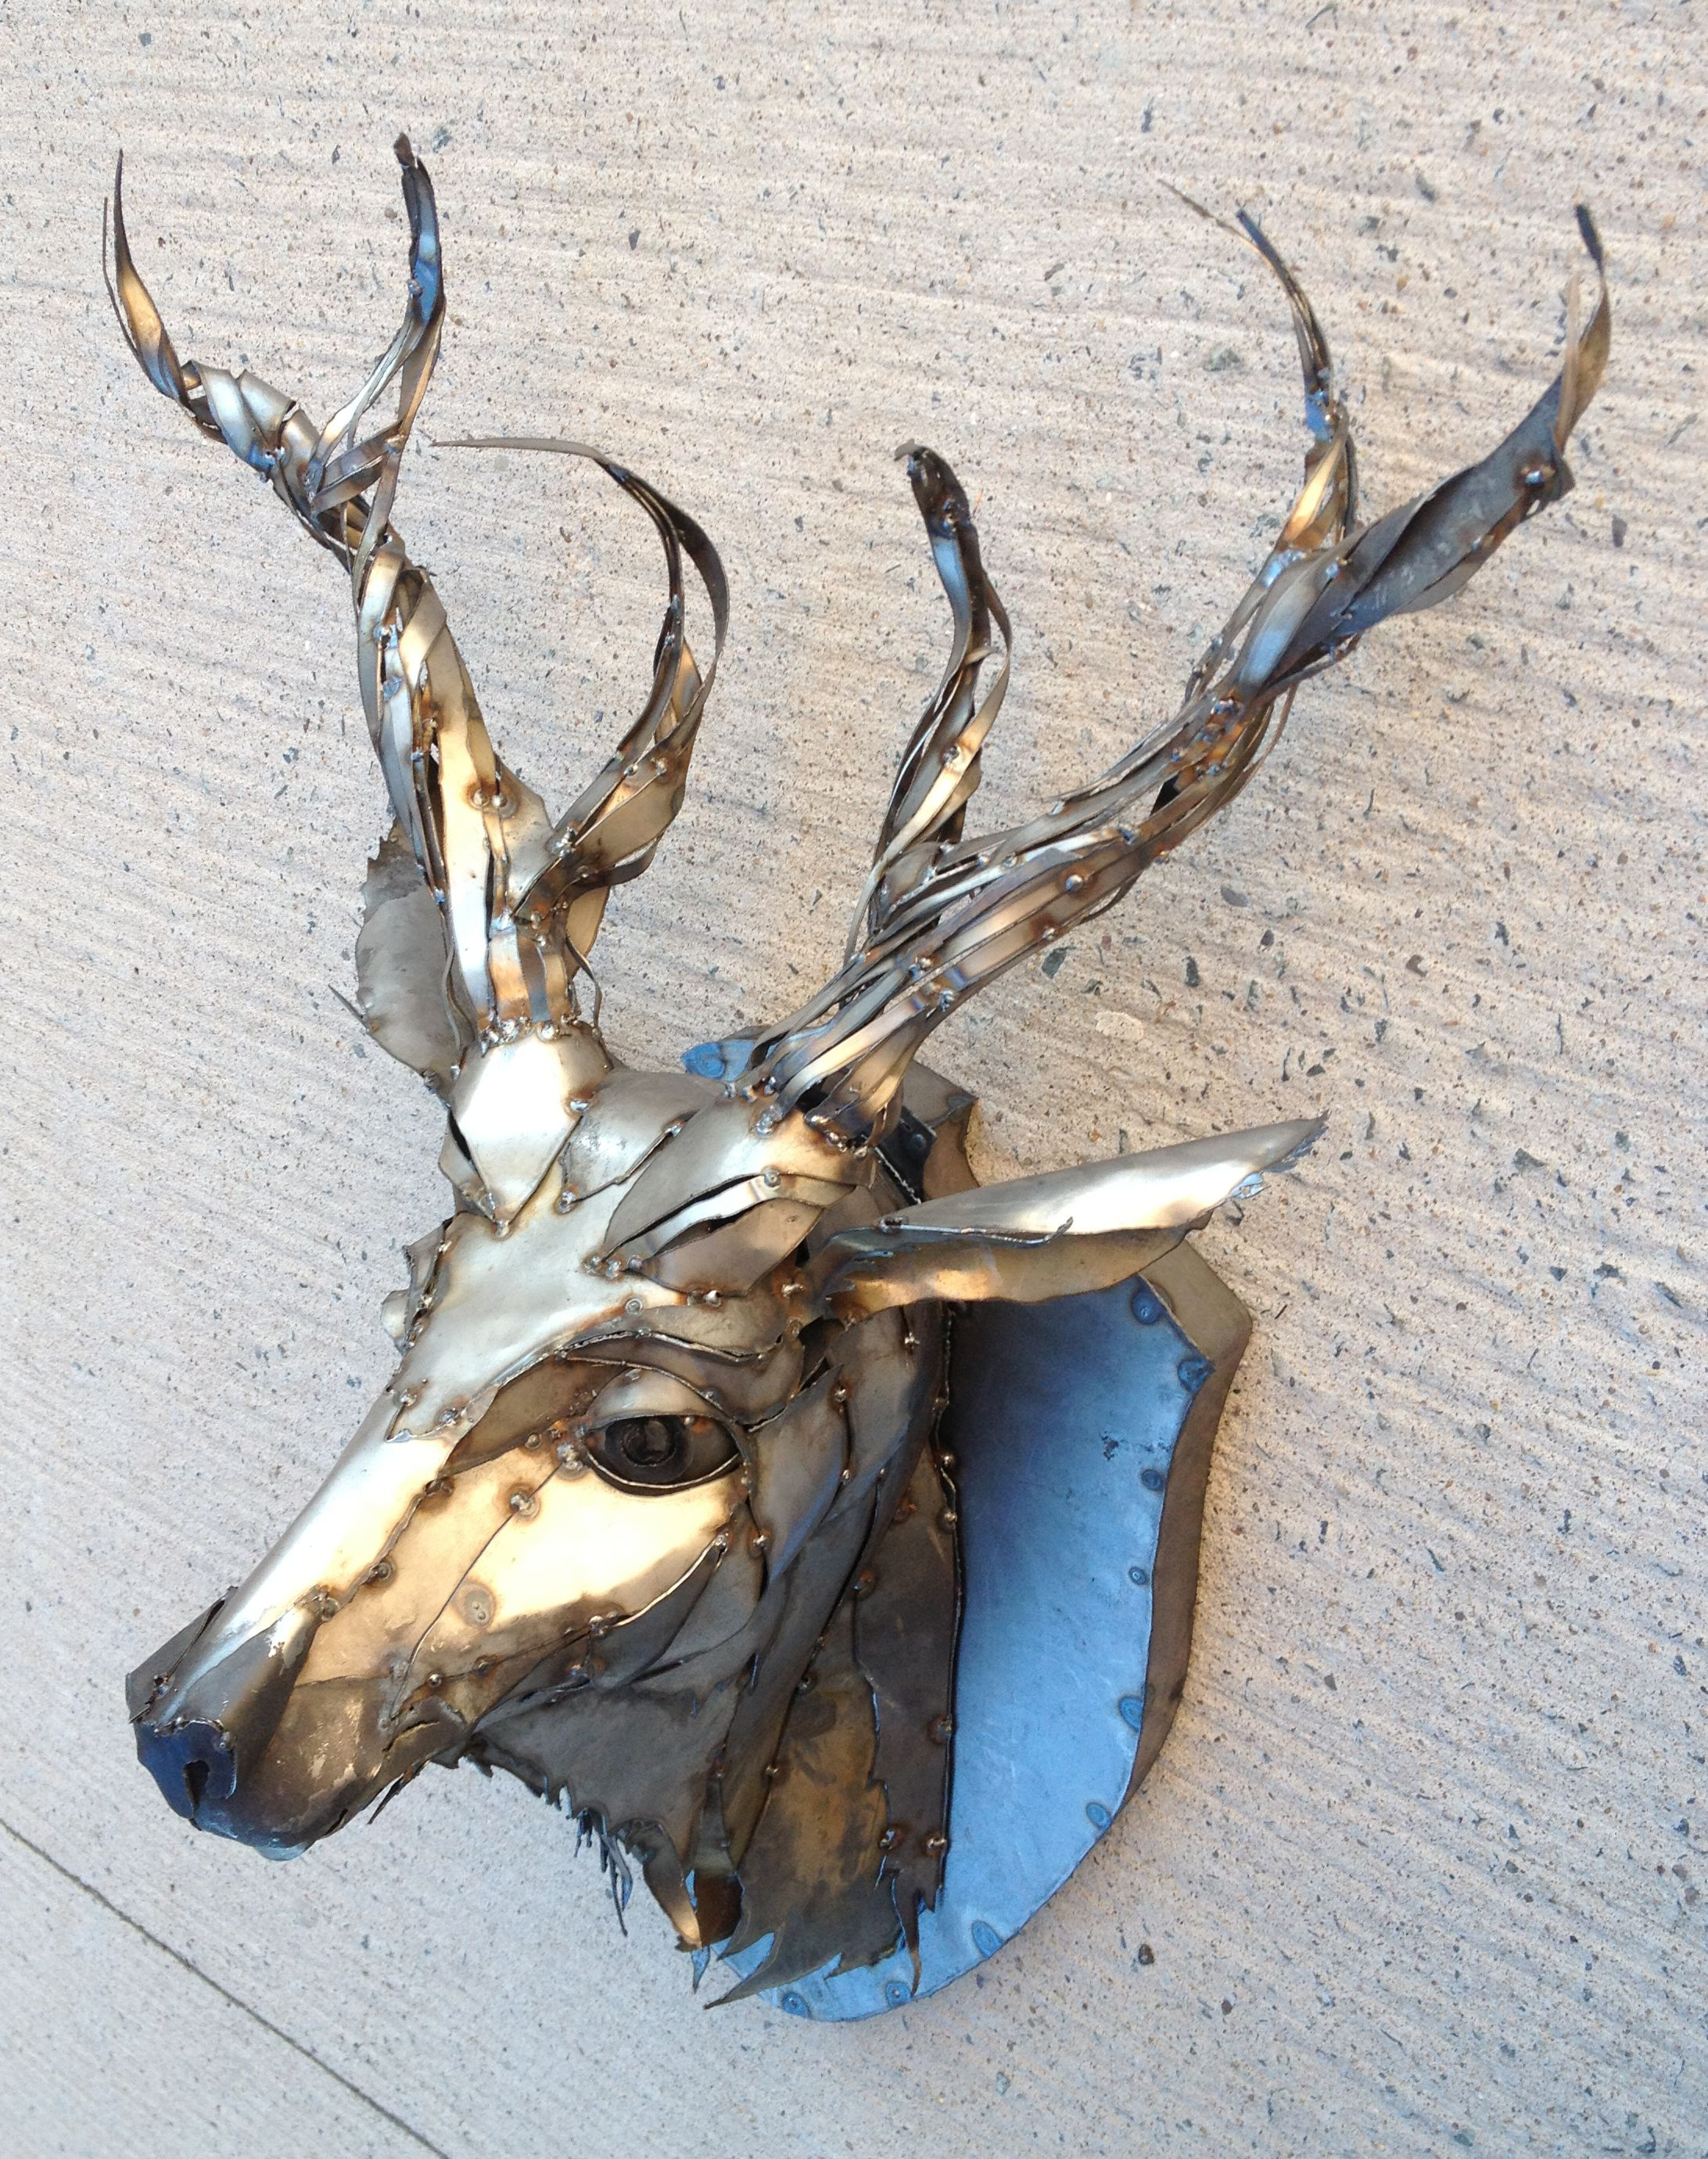 Deer Head Metal Art Sculpture 2 Feet X 3 Feet X 16 Inches The Blue Is Just A Reflection It Is All Steel 950 C Metal Art Sculpture Scrap Metal Art Metal Art